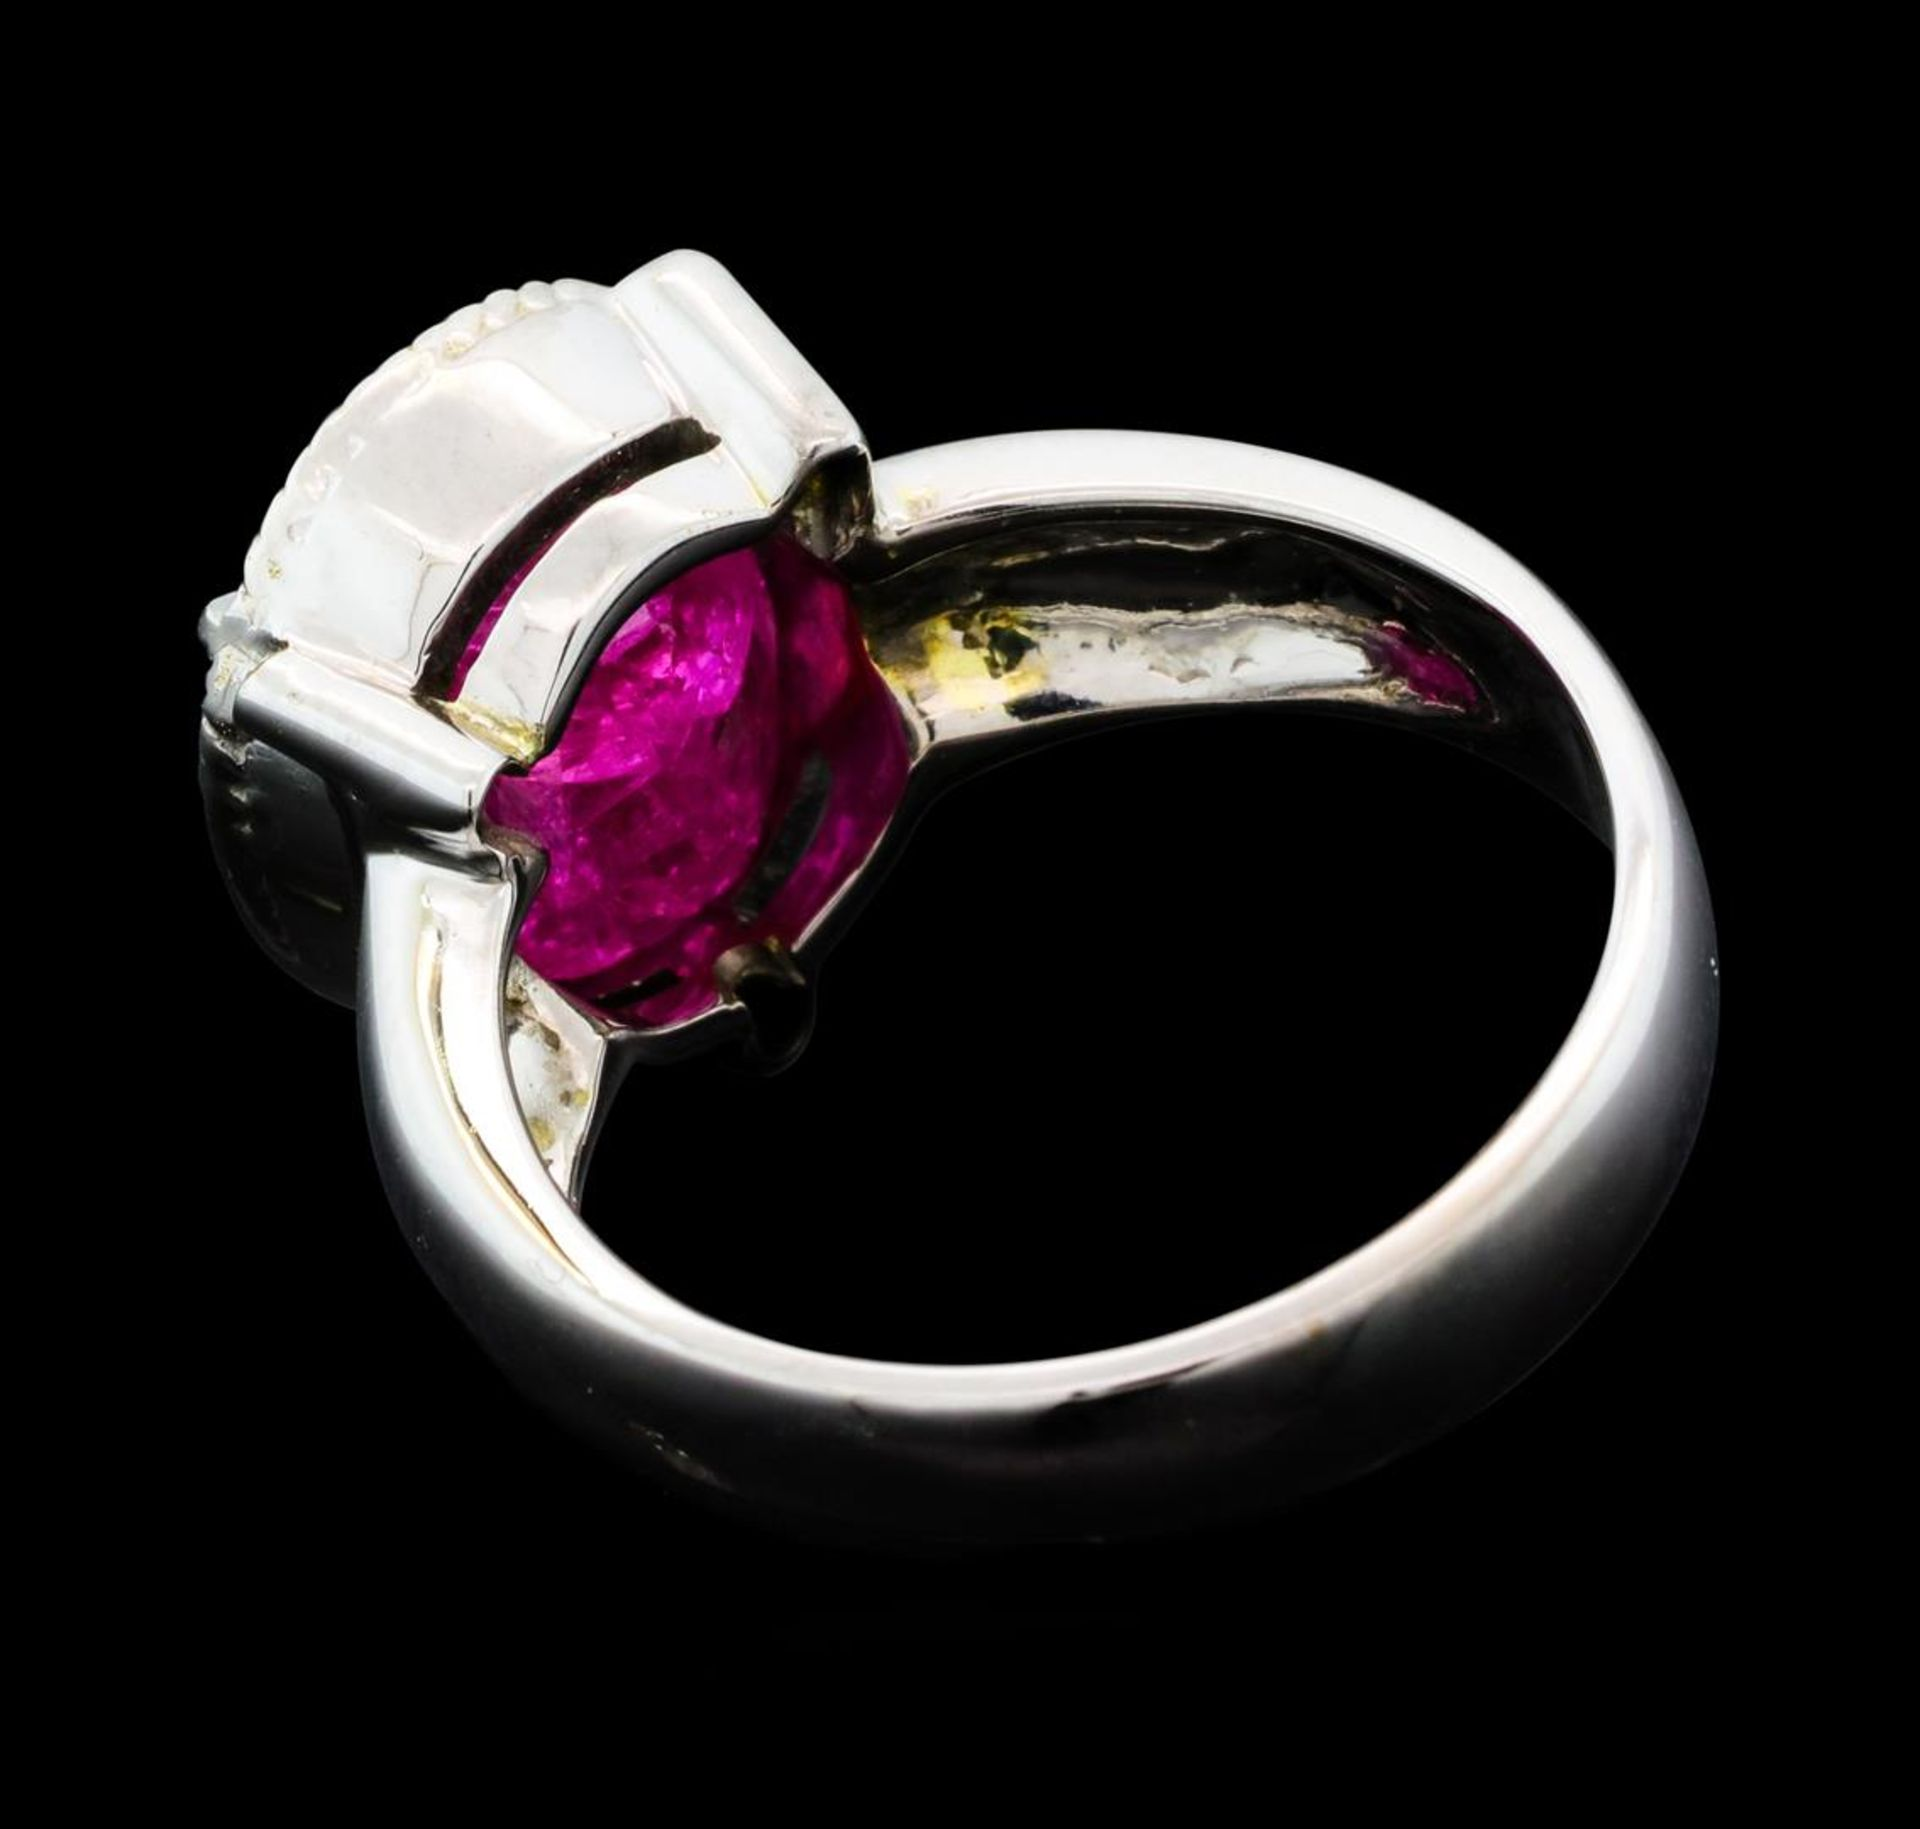 5.85 ct Ruby And Diamond Ring - 14KT Yellow Gold with Rhodium Plating - Image 3 of 5